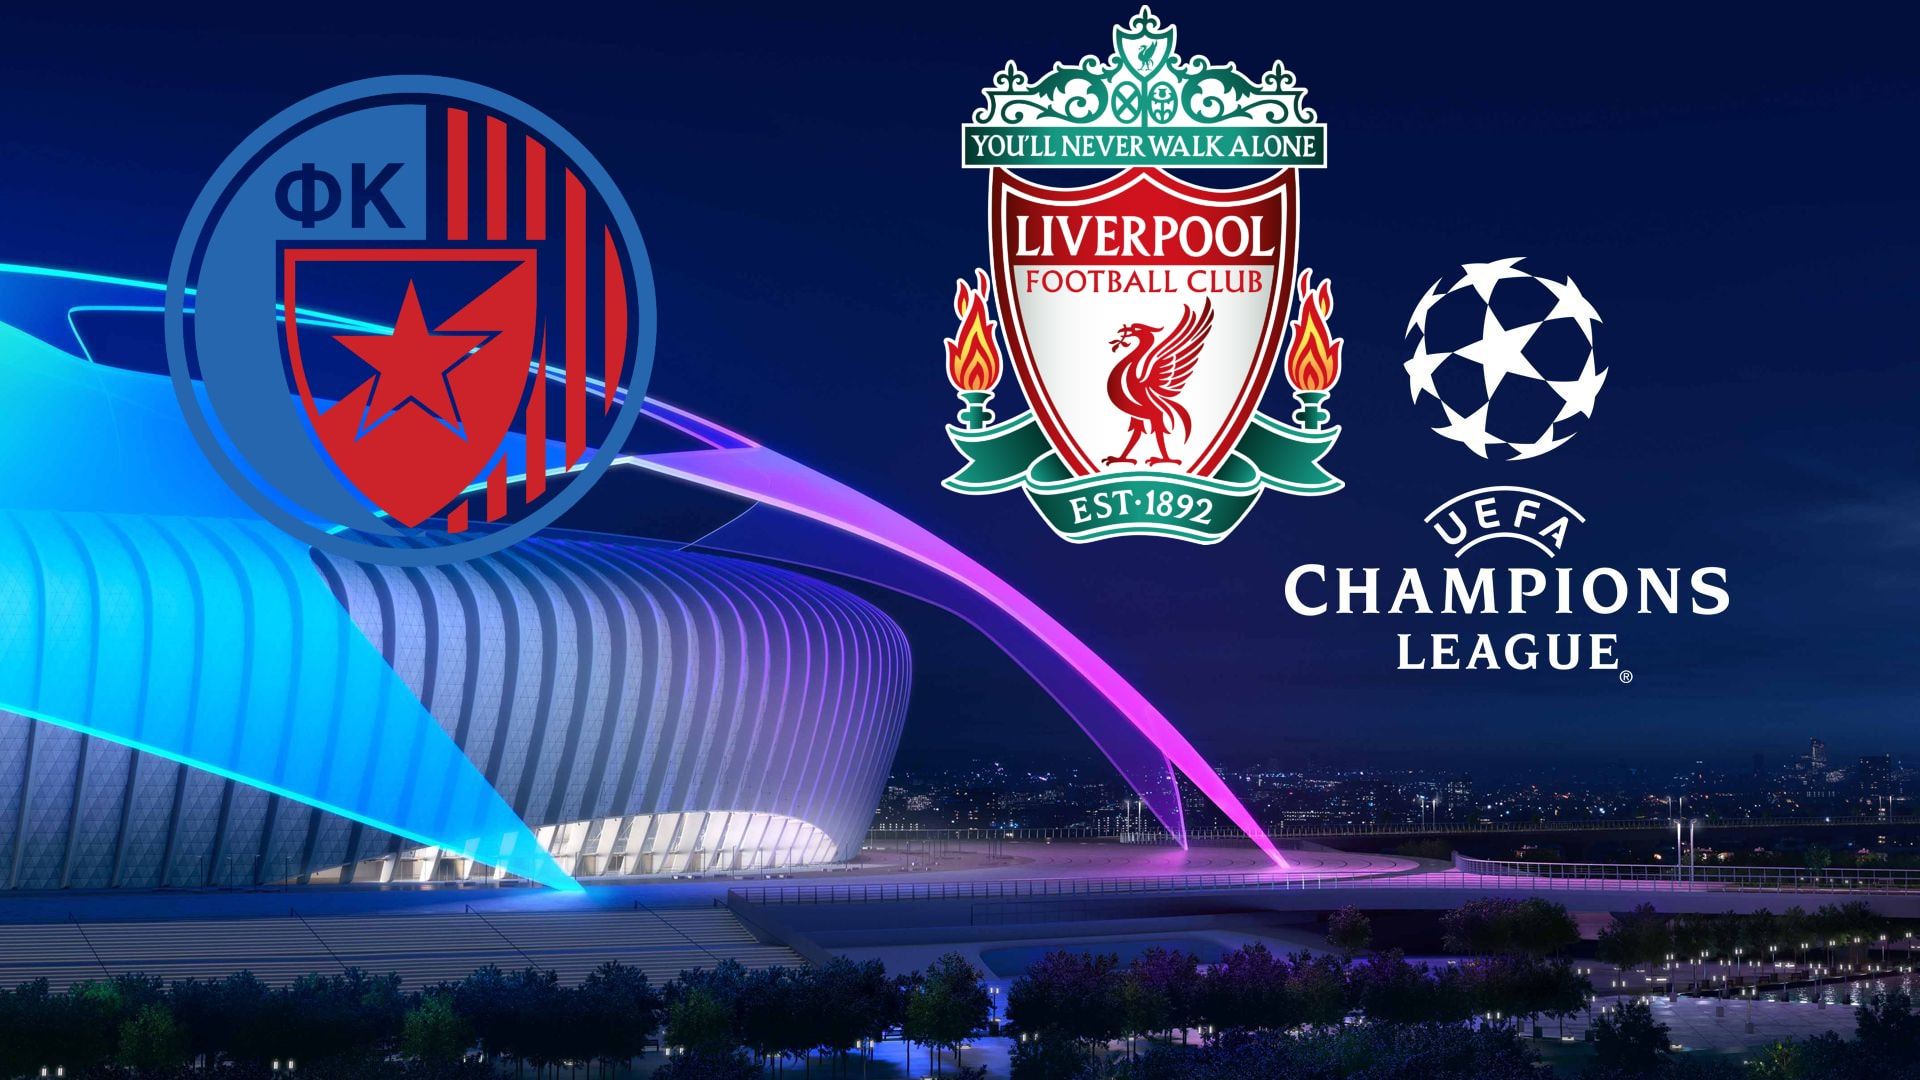 Champions League Red Star Belgrade vs Liverpool